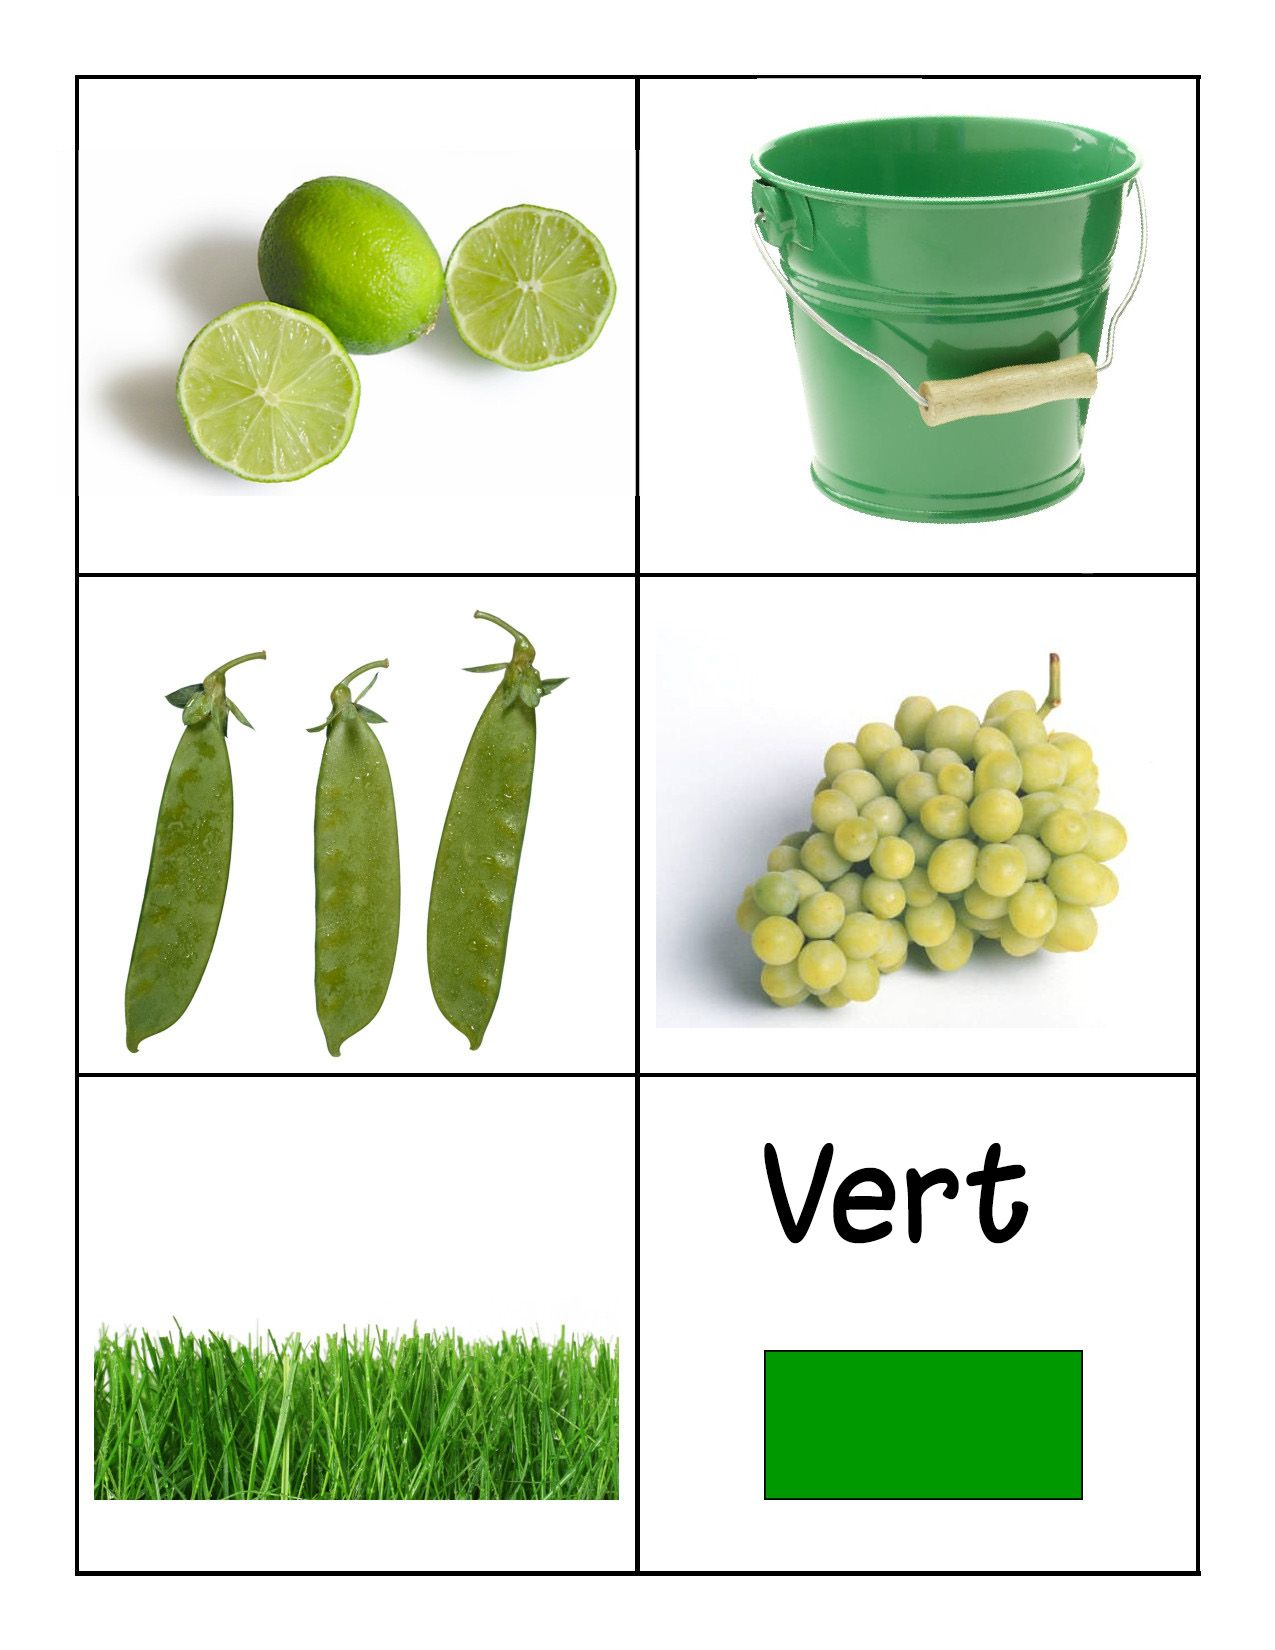 kleuren leren groen | evrim | Pinterest | Montessori, School and Maths